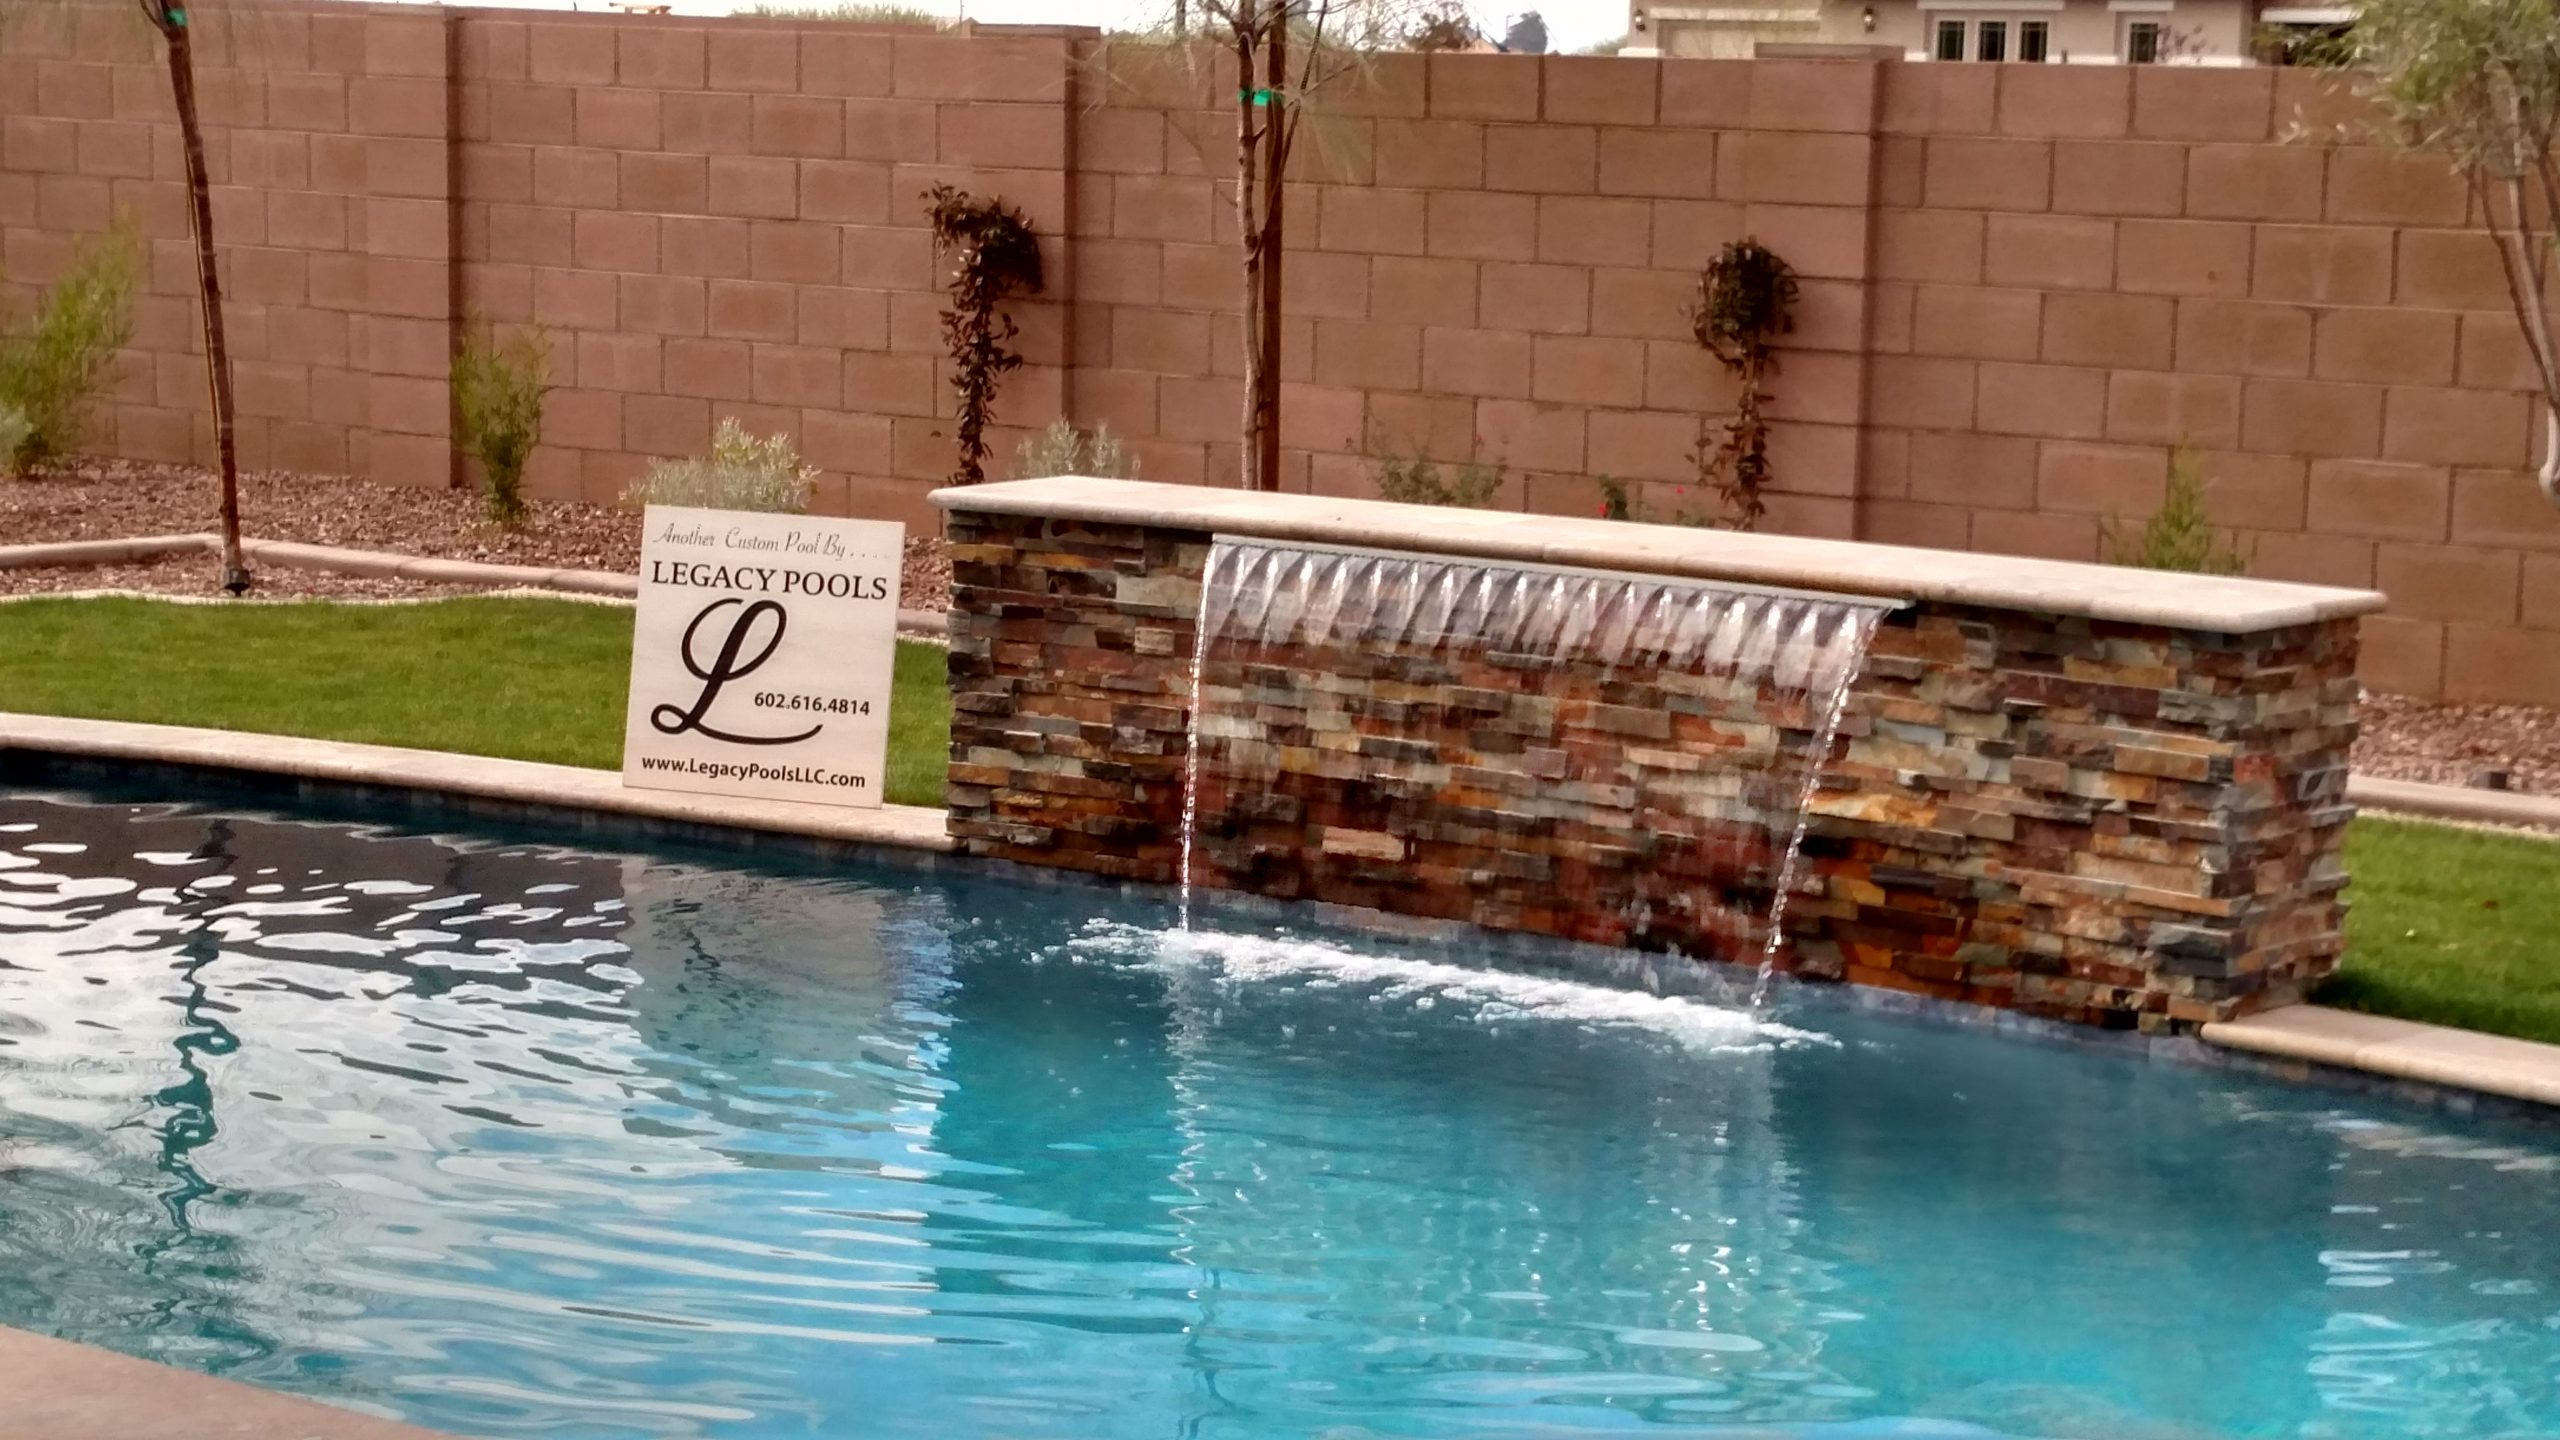 Legacy Pools LLC front web photo 6